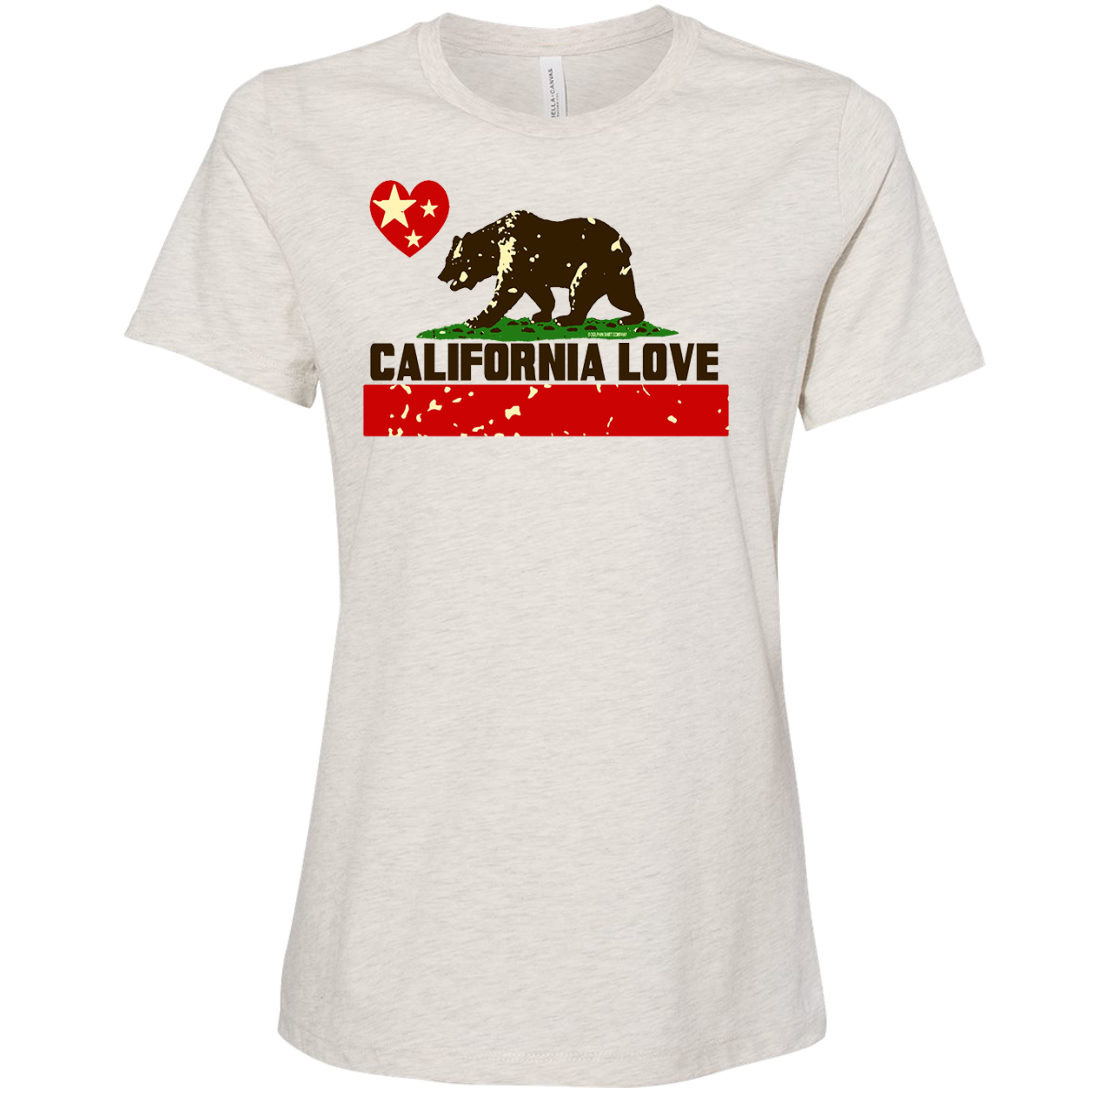 California Love Women's Relaxed Jersey Tee